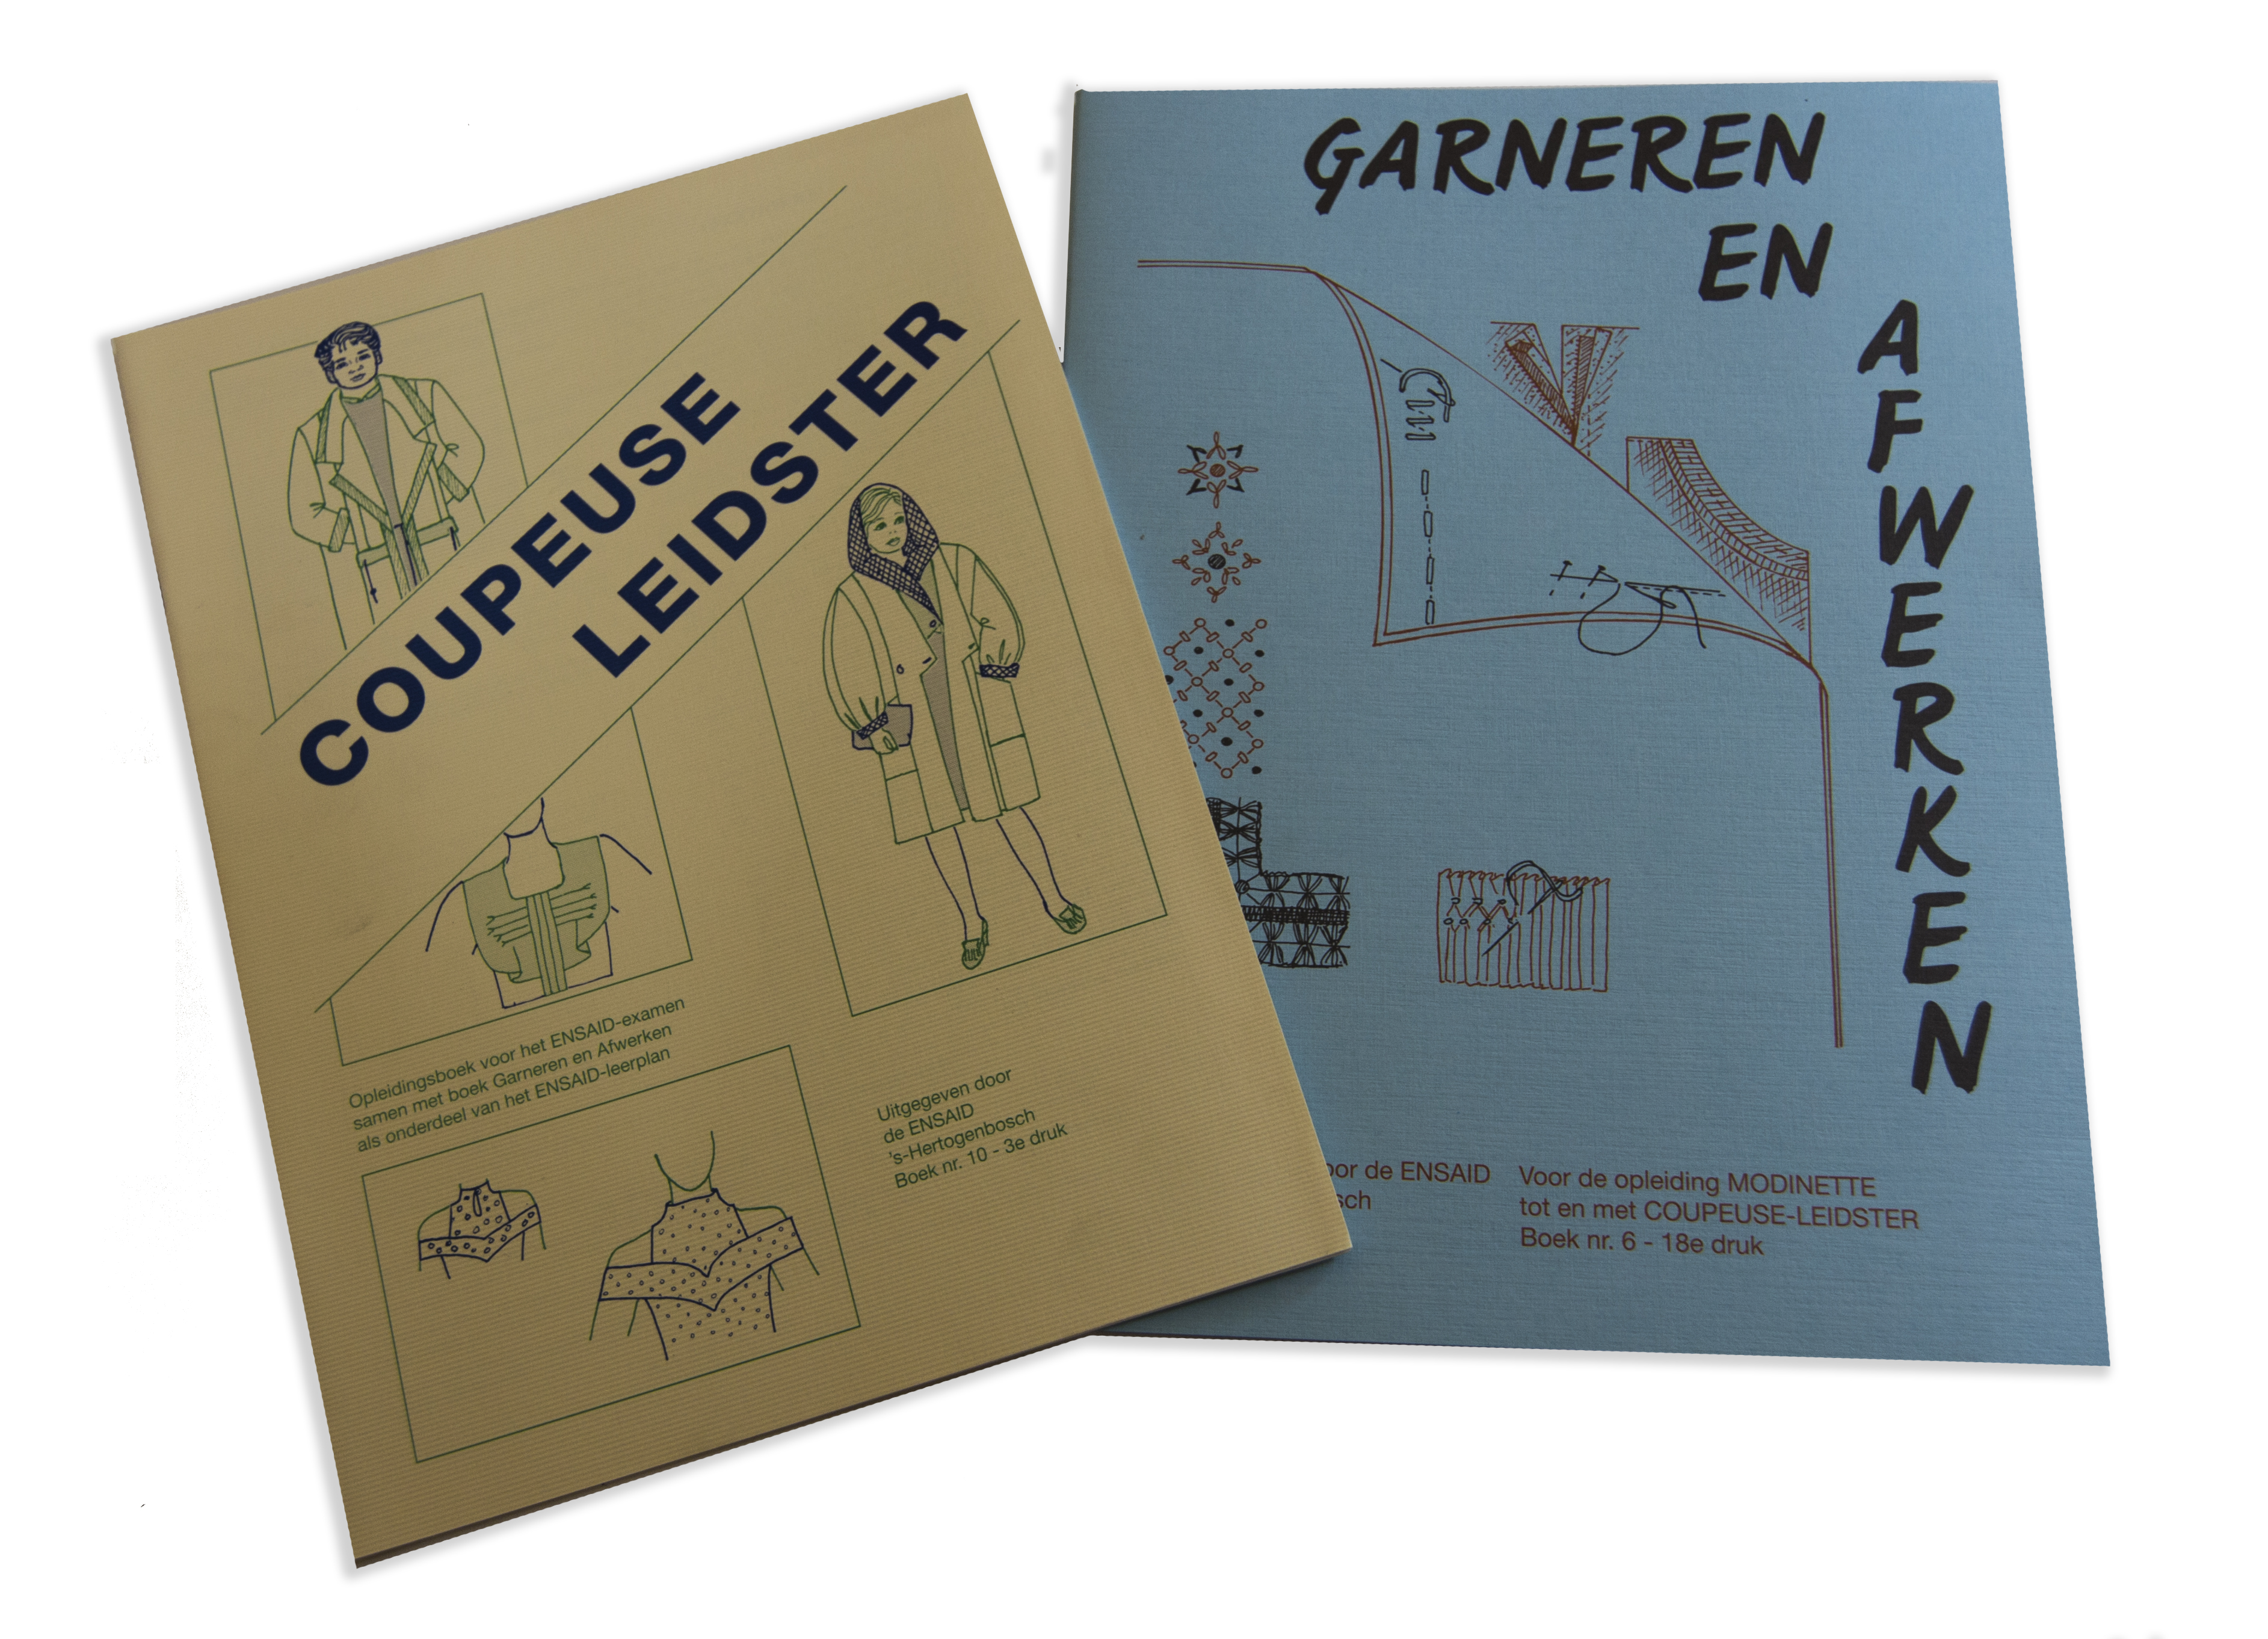 Coupeuse - Leidster